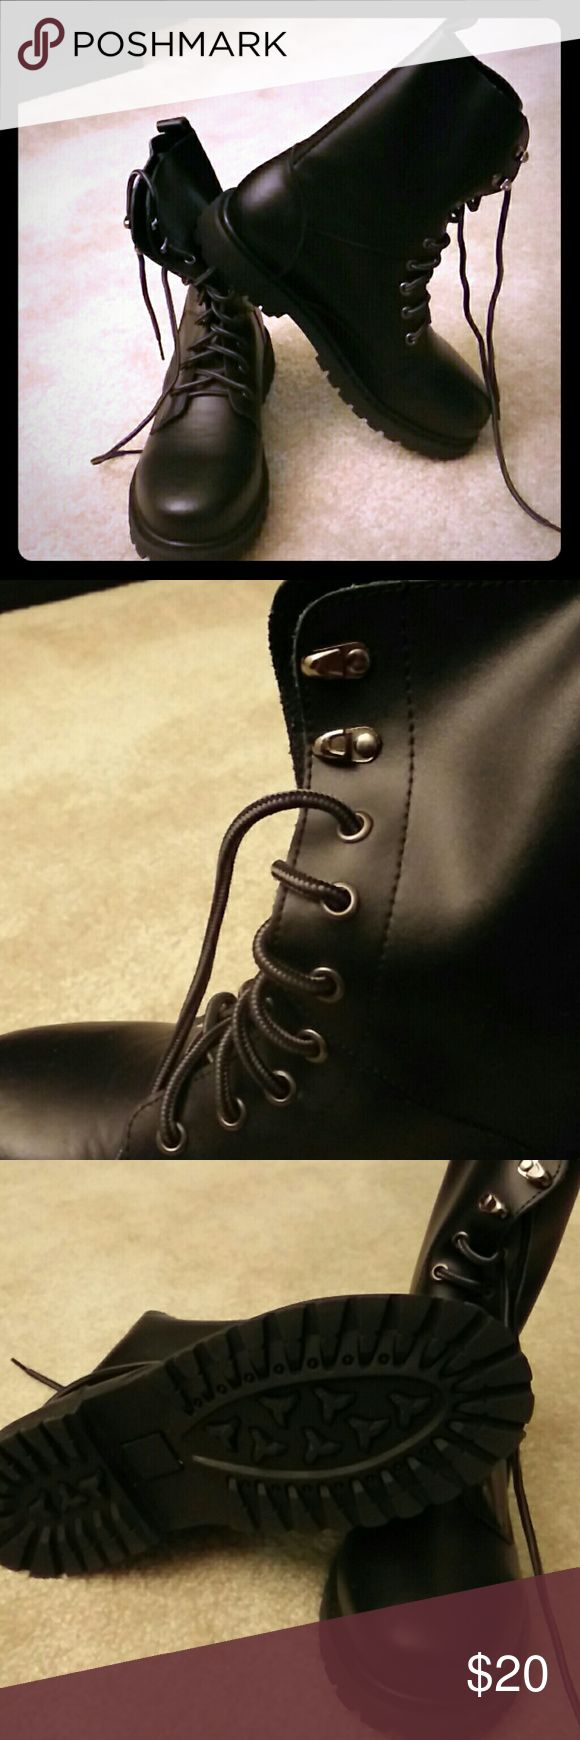 Combat boots for men Combat boots for men,  brand new, never worn Shoes Boots